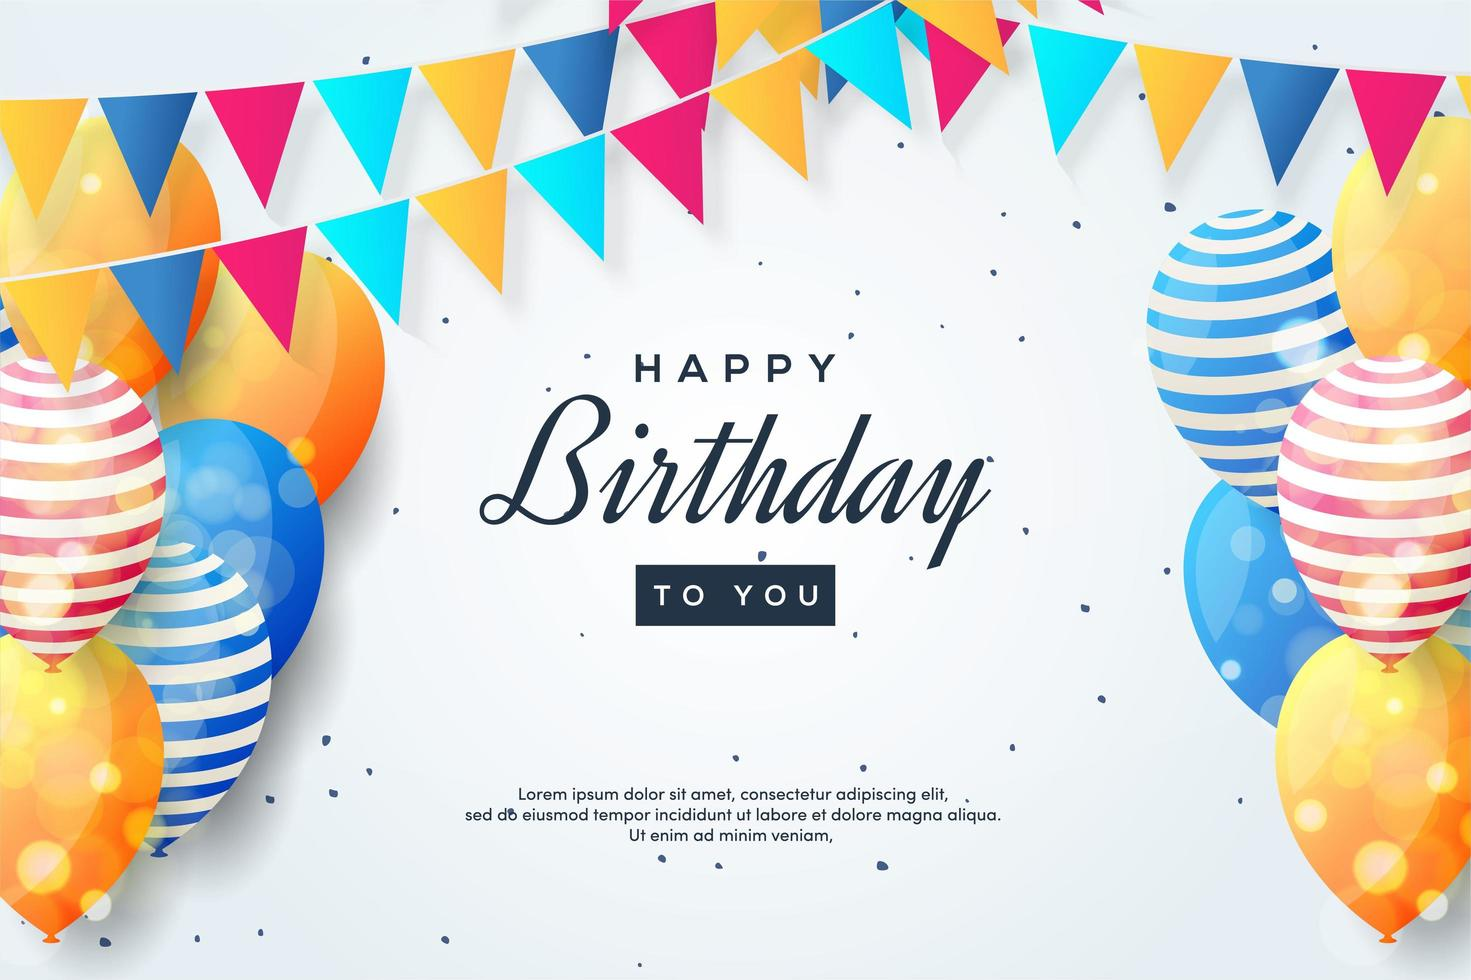 Birthday design with colorful balloons and flag garland vector